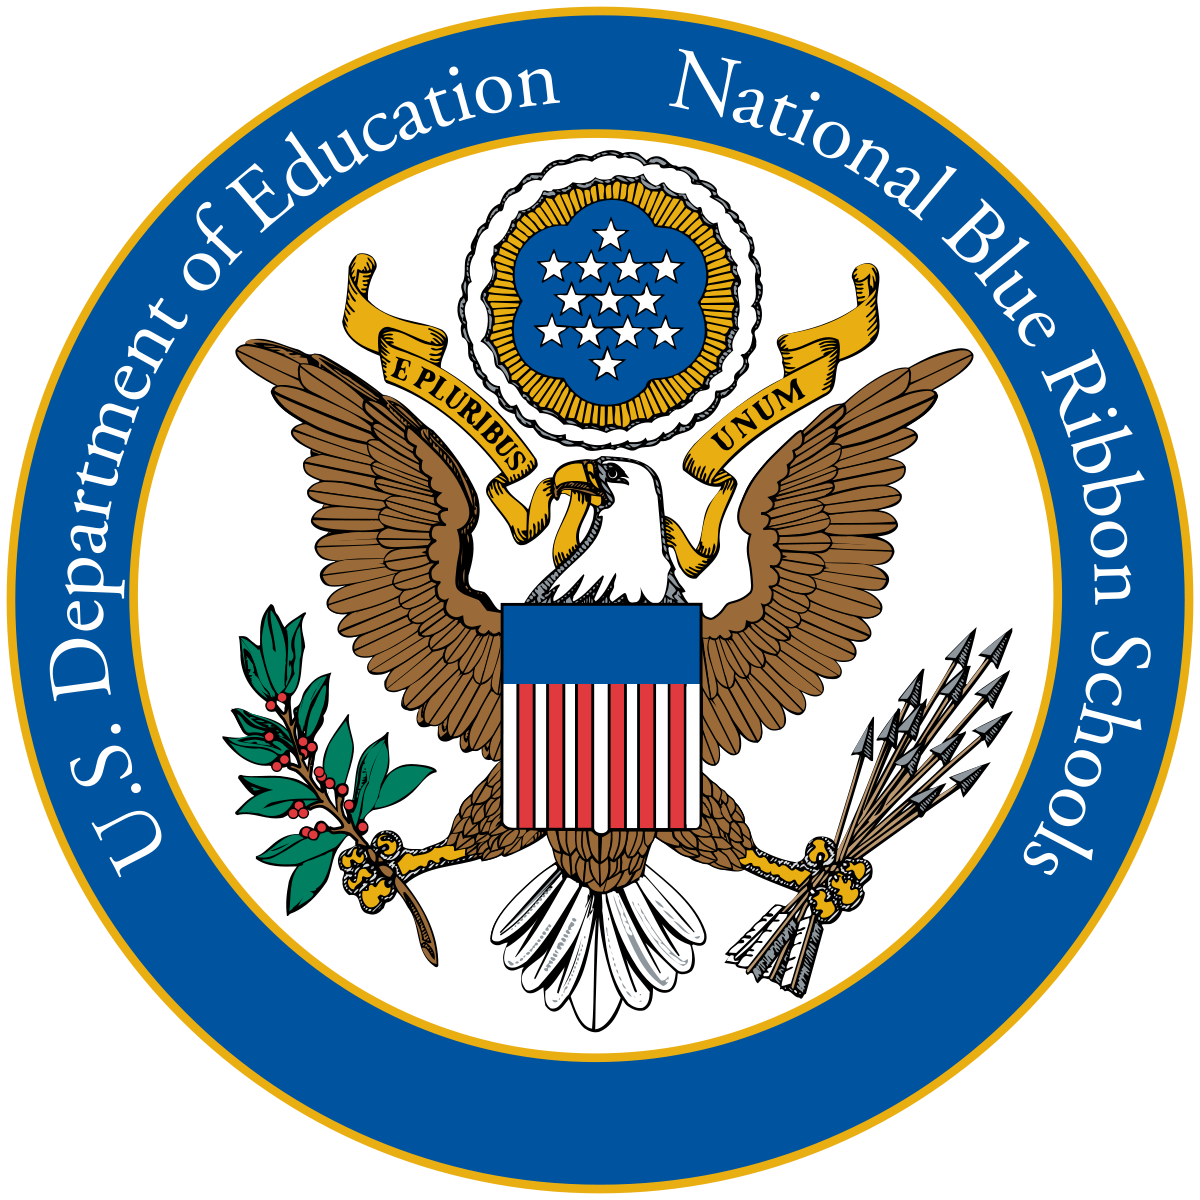 Vector award crest. National blue ribbon schools